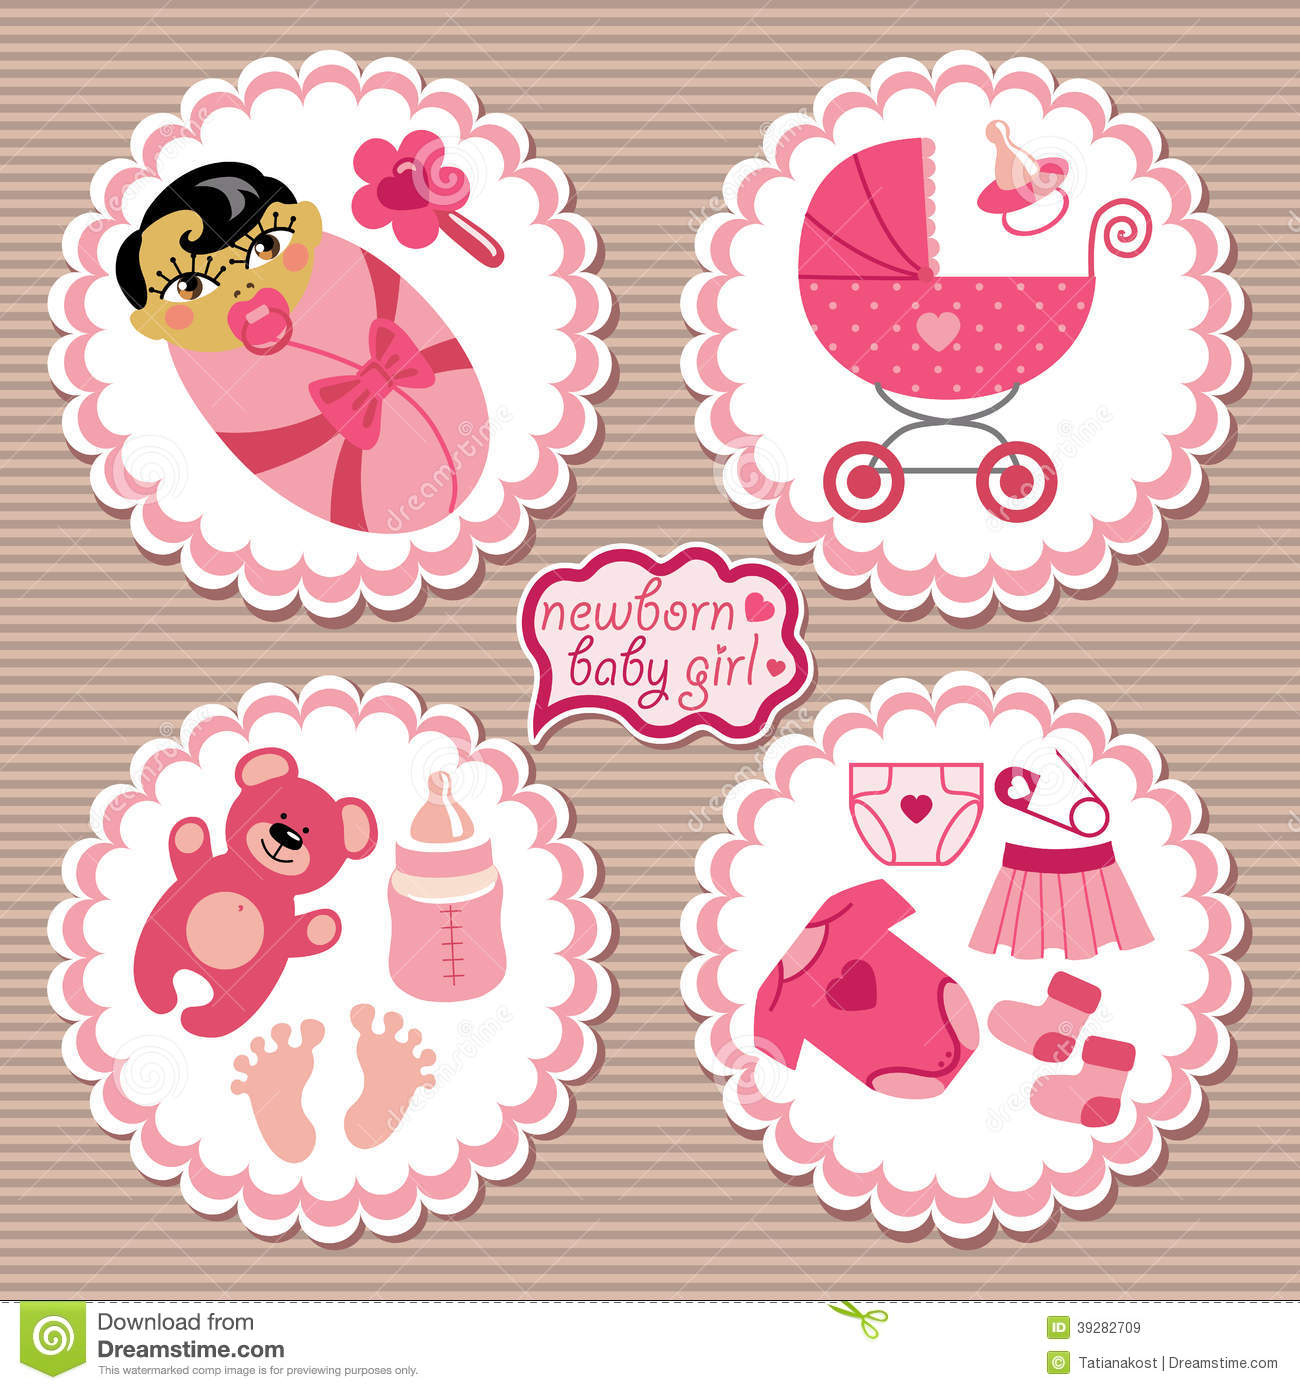 Label with elements for Asian newborn baby girl